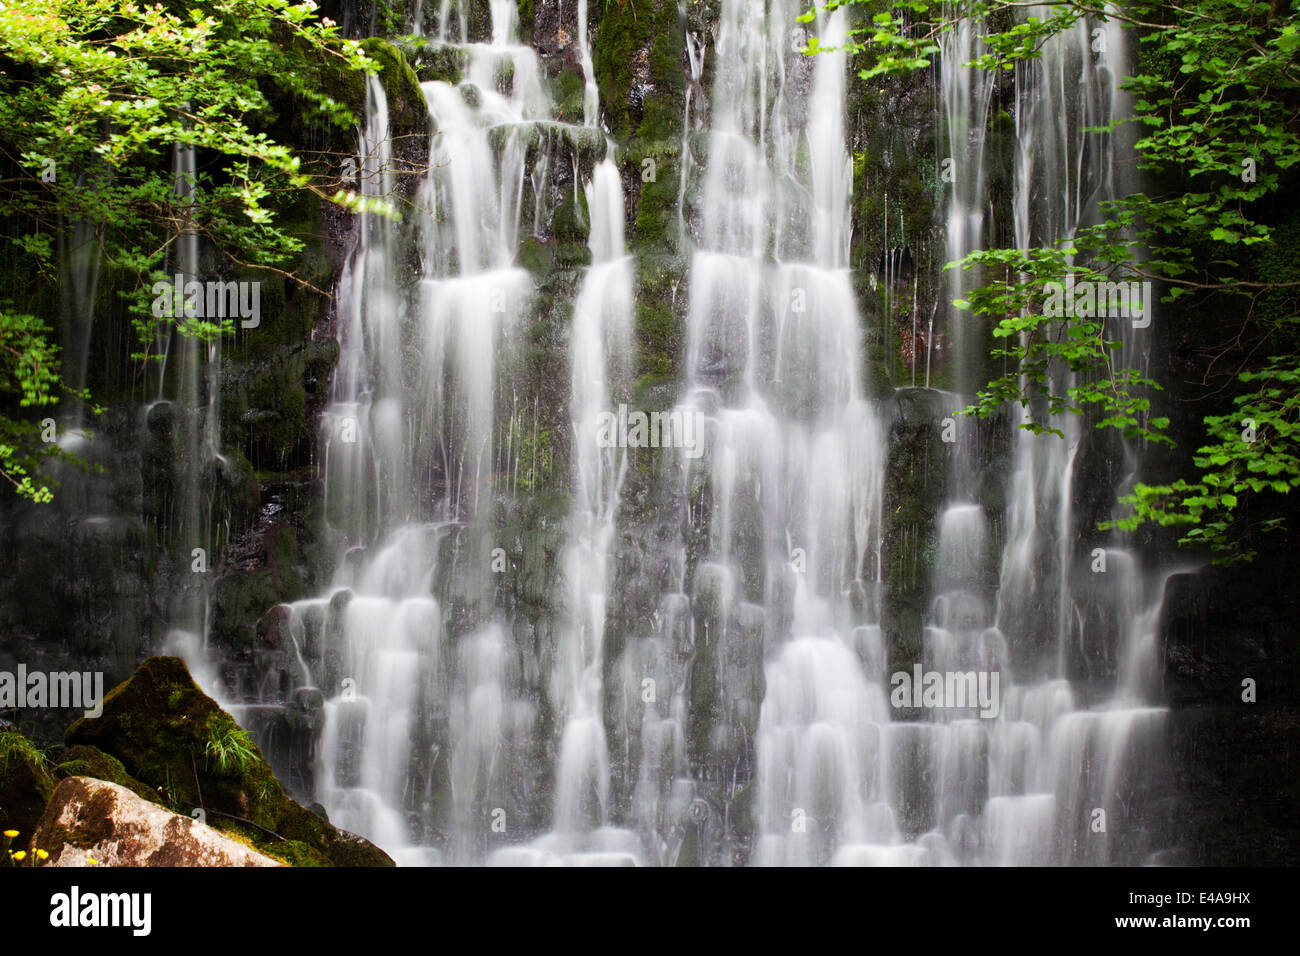 Scale Haw Force near Hebden in Wharfedale Yorkshire Dales England - Stock Image